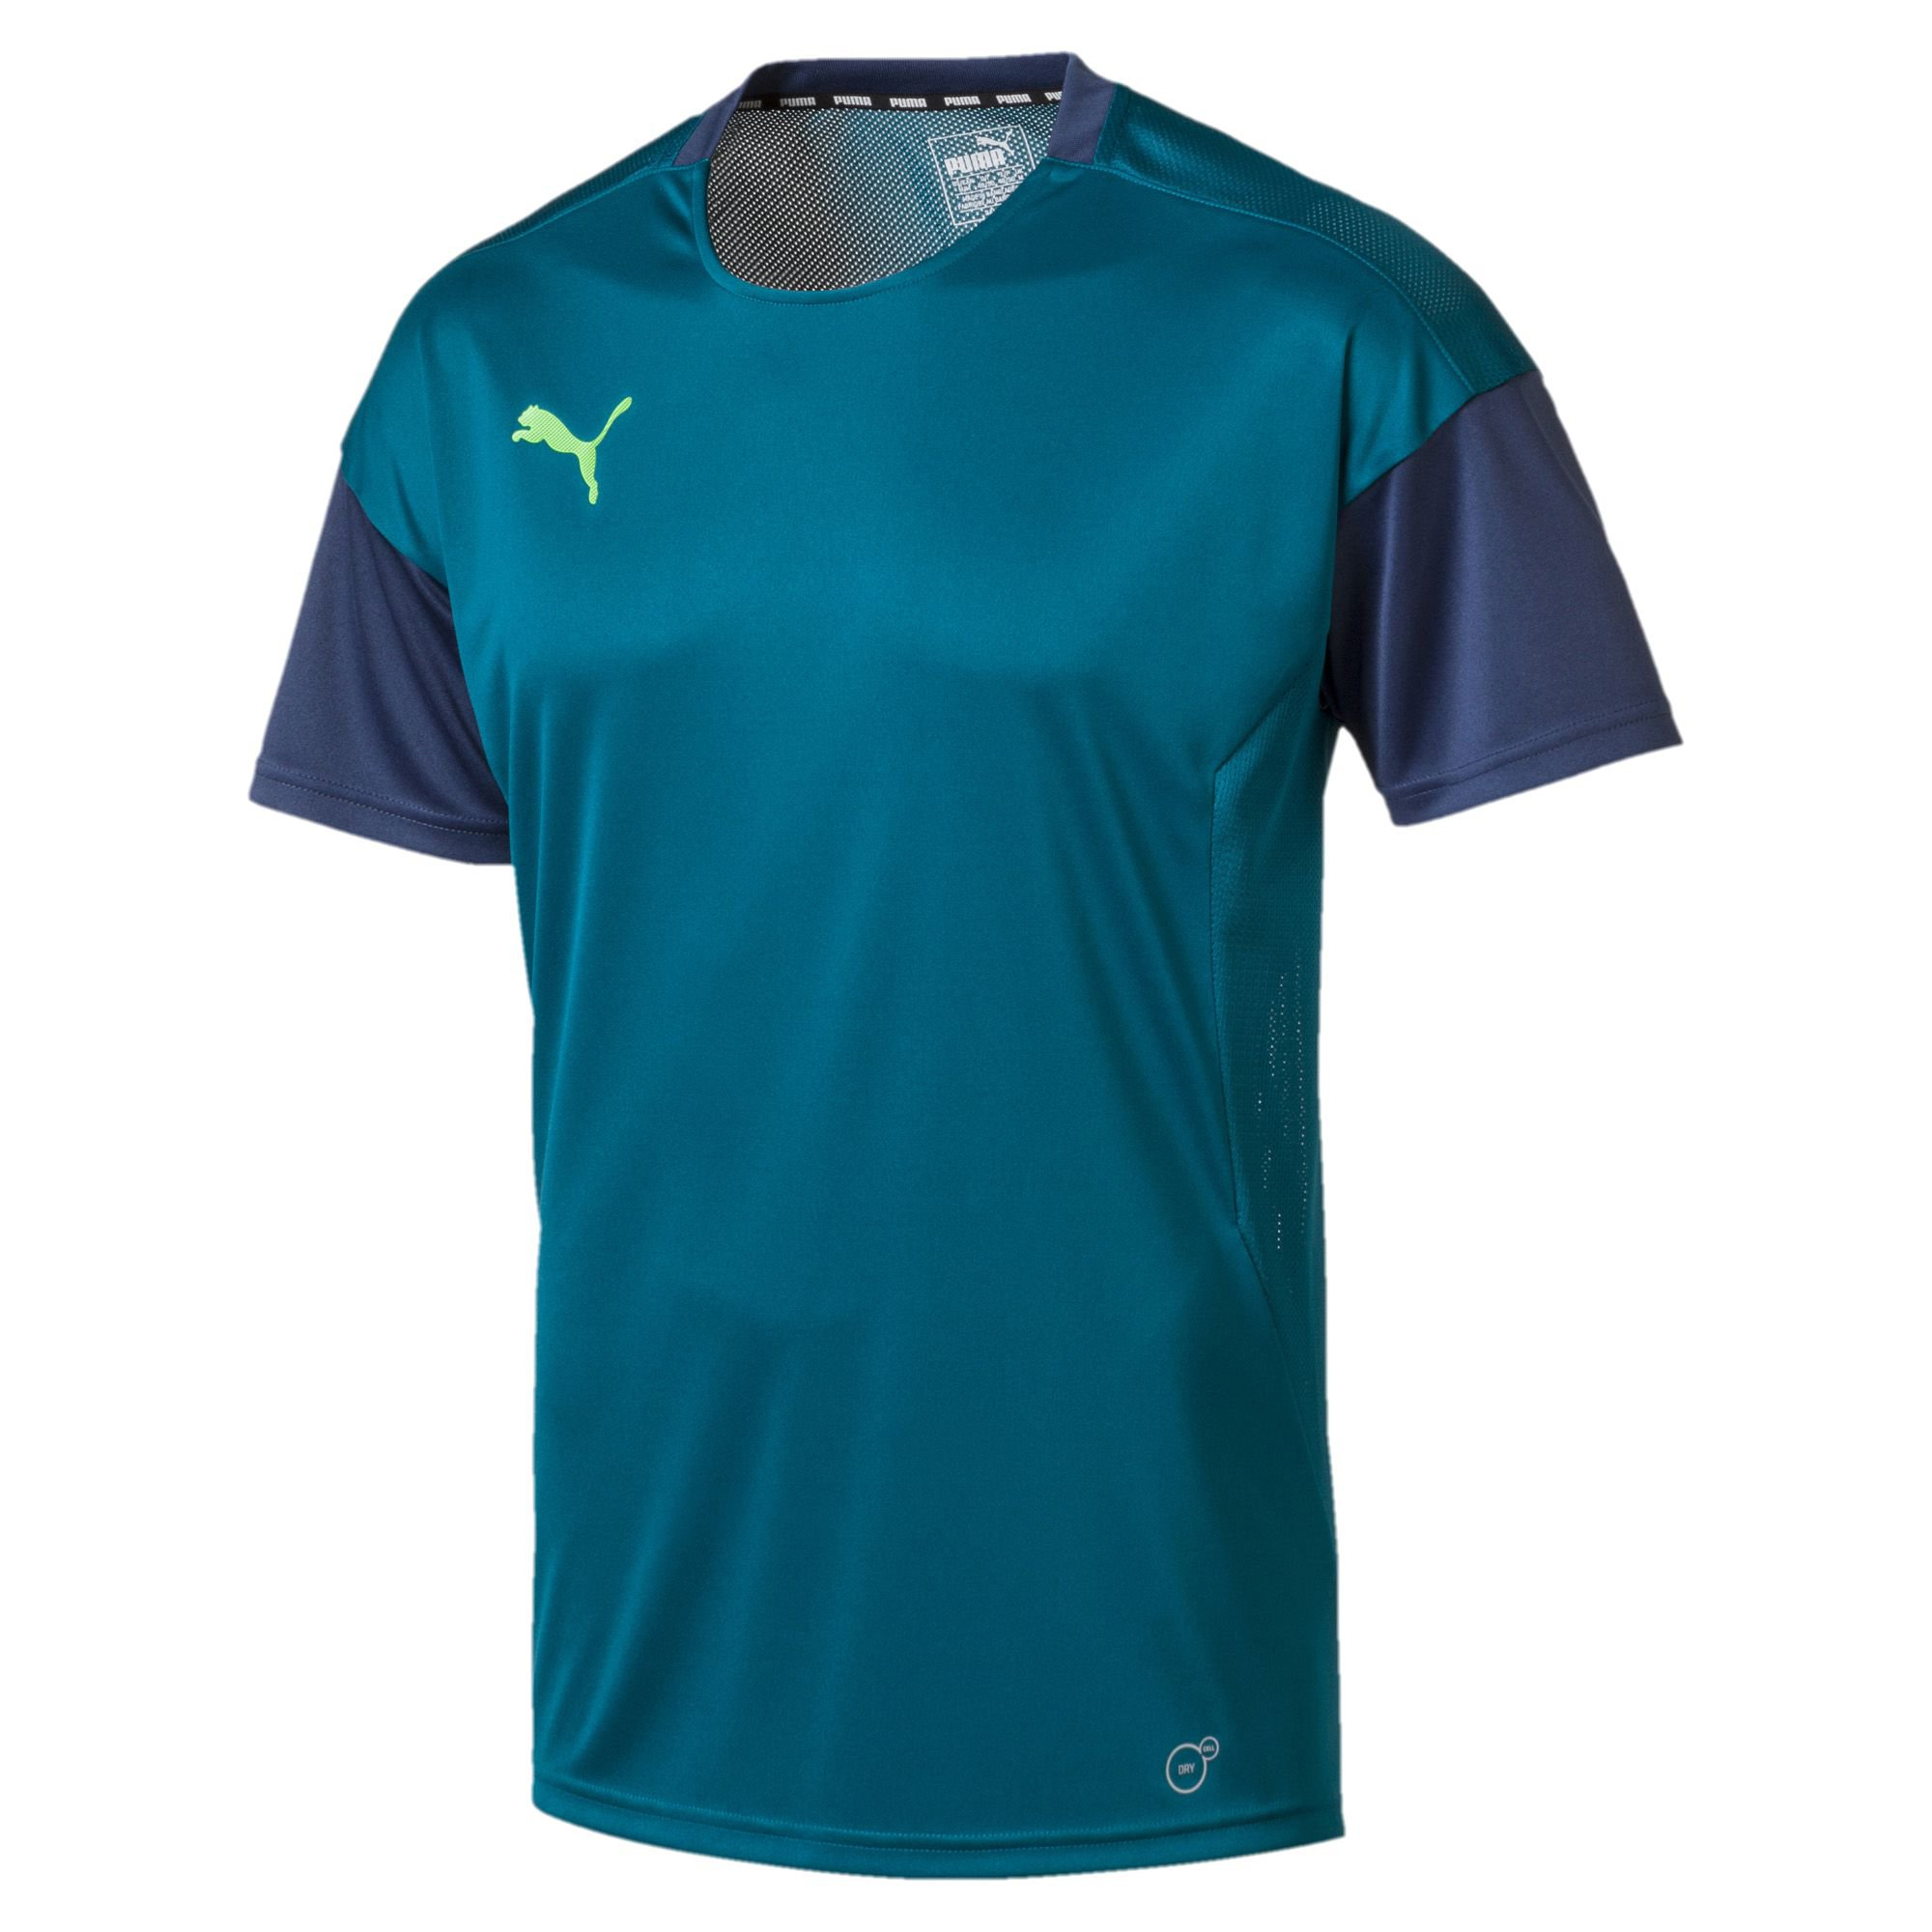 Available from 10.11 Adidas Men Running t-shirt 65556103 available from 10 11 asics running t shirt 141240 1107